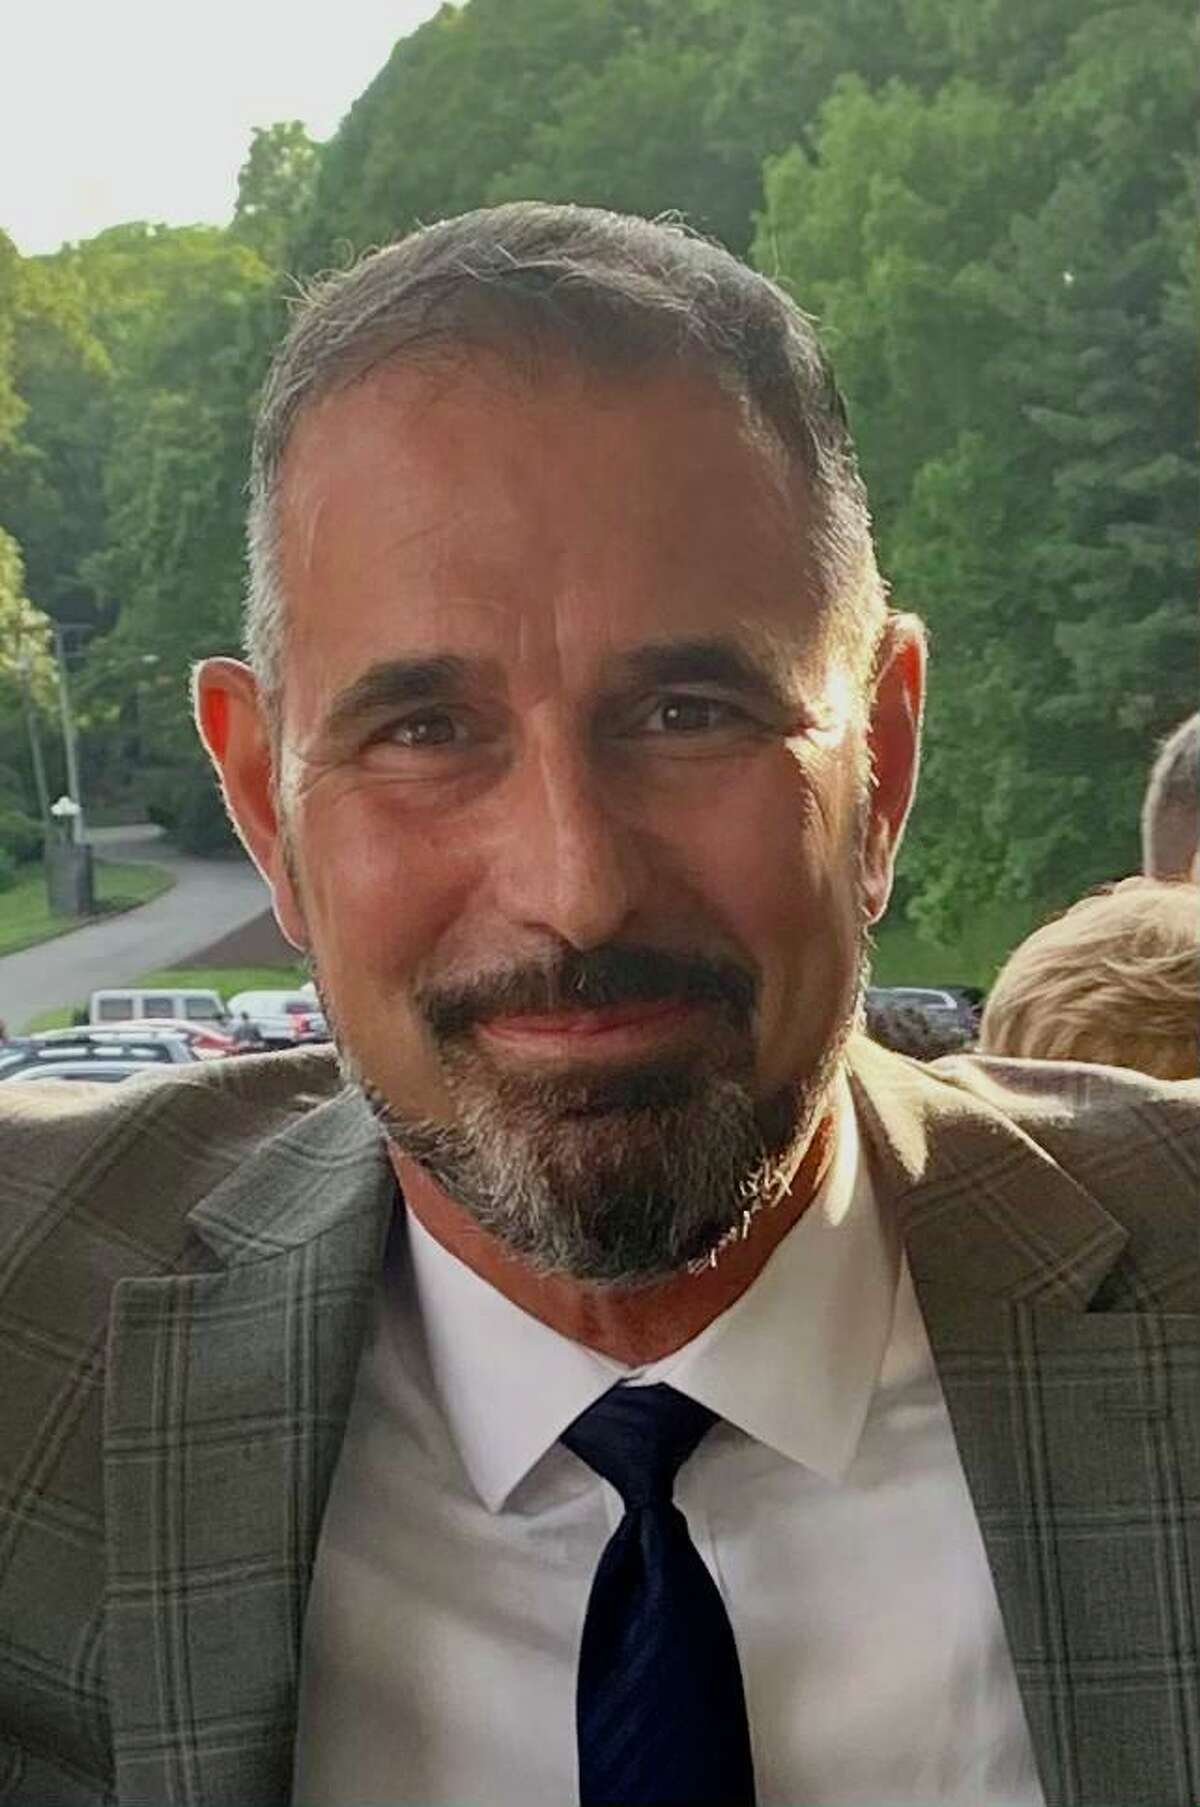 Mario Almeida is the new head of school and assistant superintendent at Joel Barlow High School in Redding.